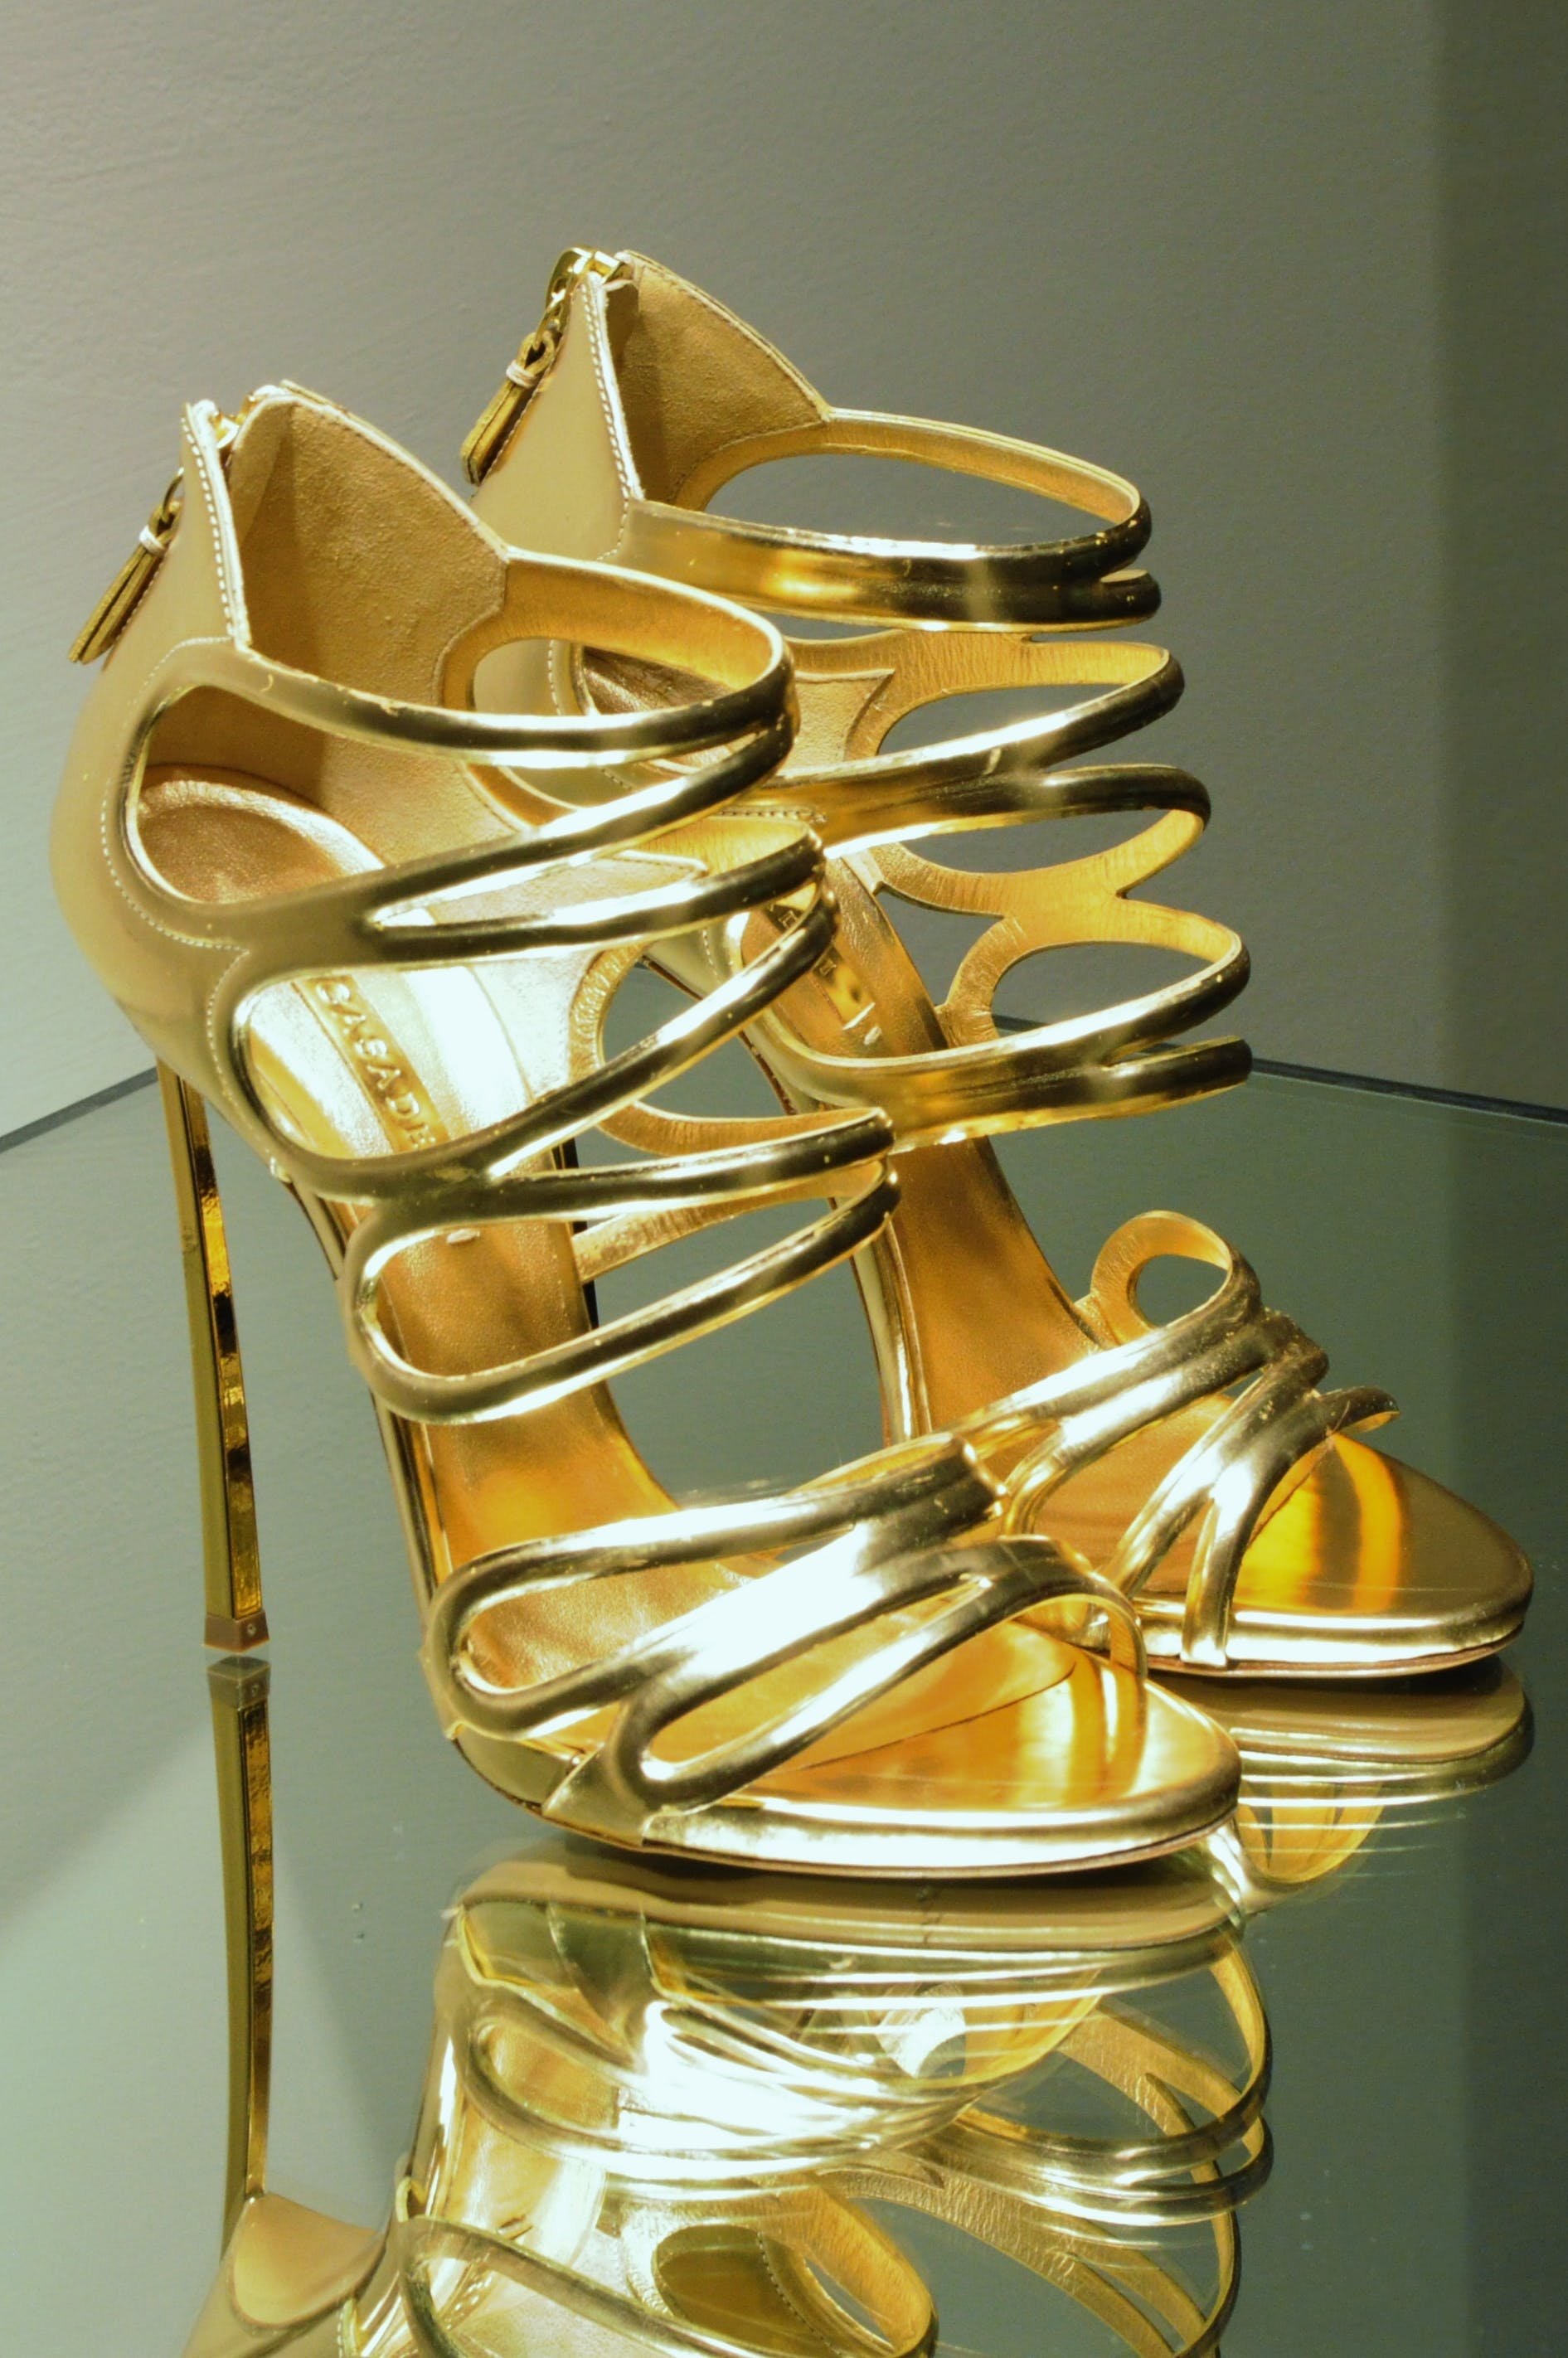 Pair of Gold Open-toe Stilettos